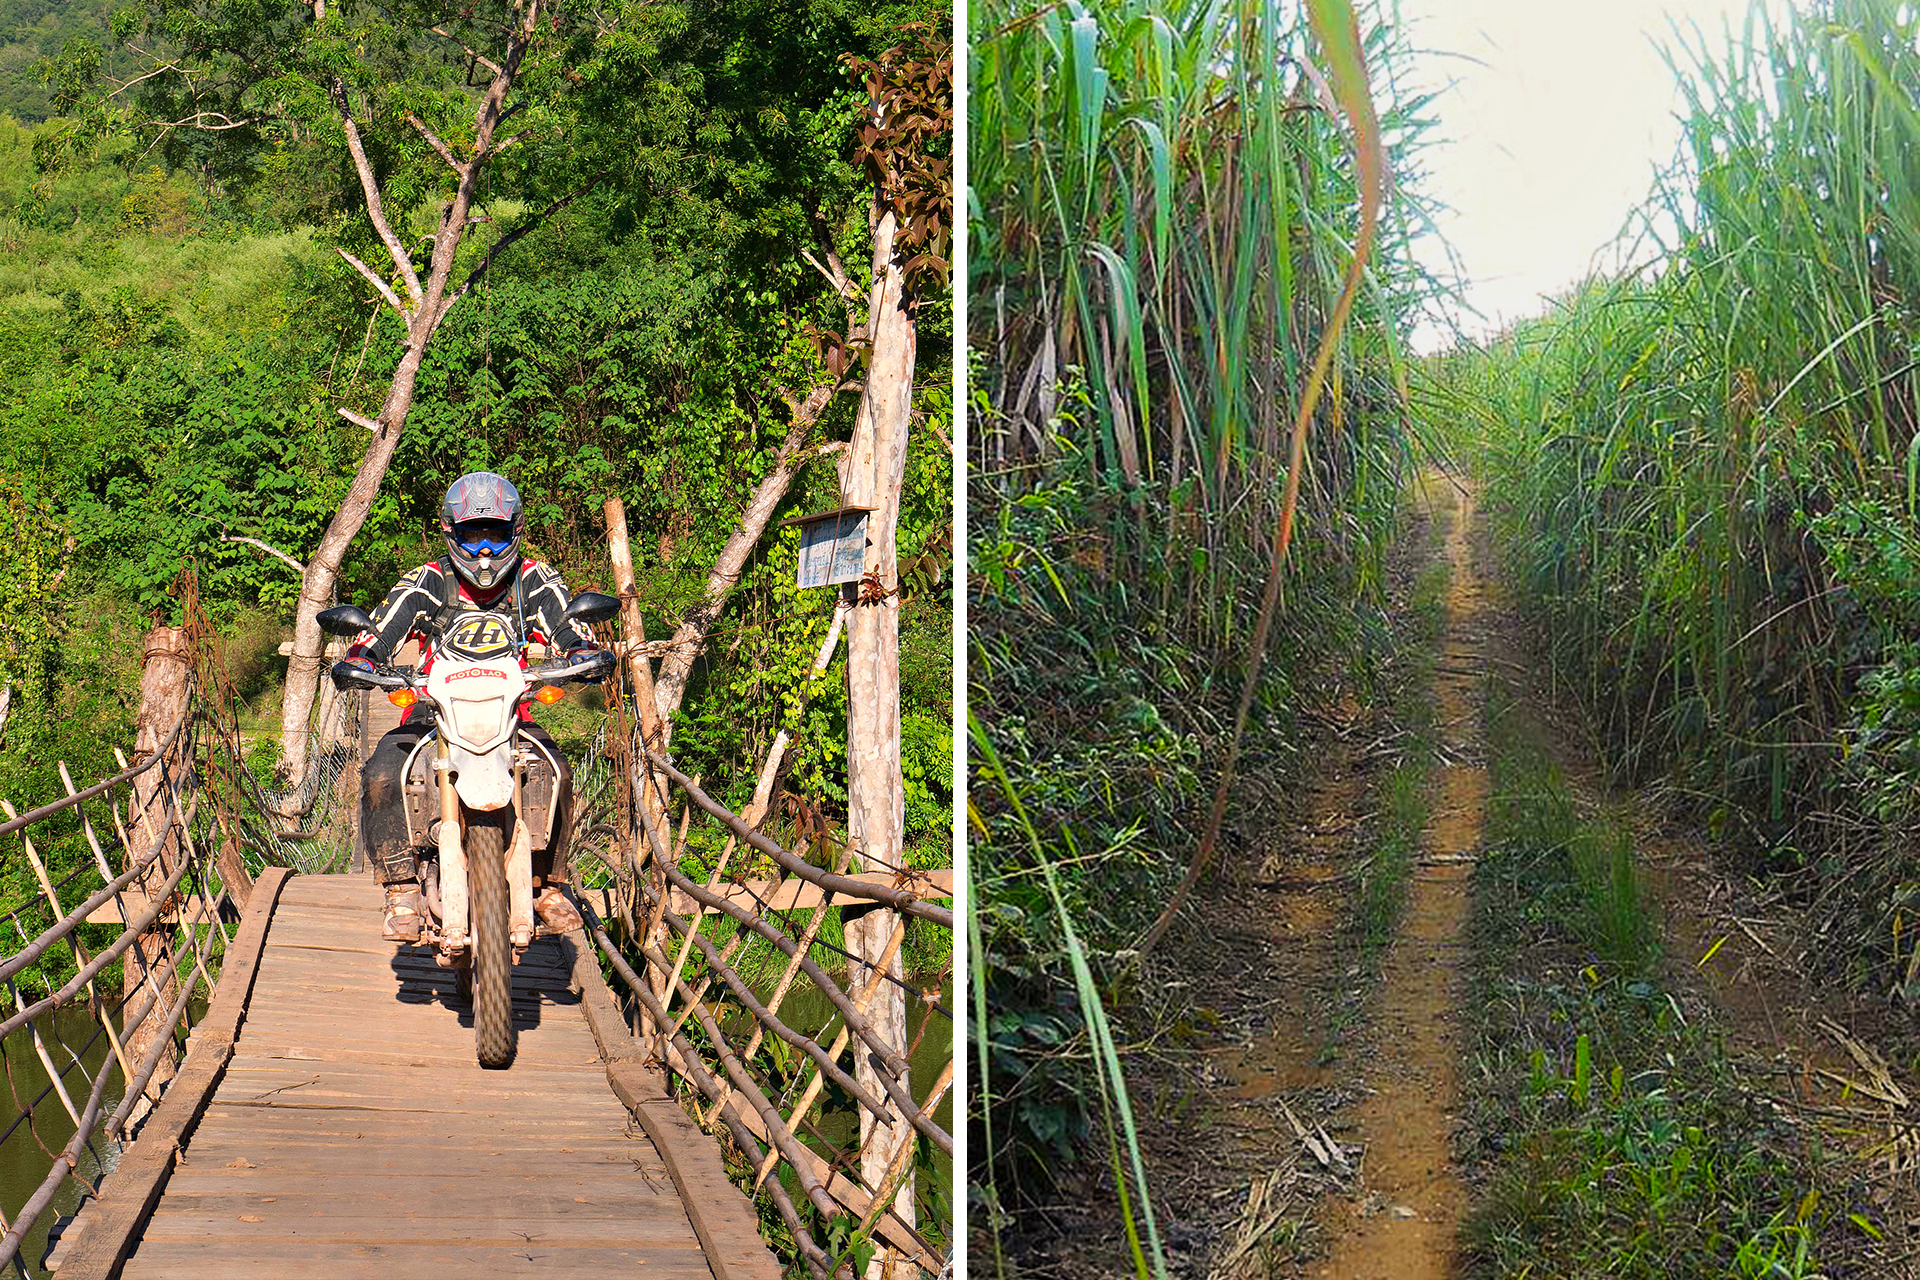 laos-Phonsavan-Lima-Site-riding-motolao-004